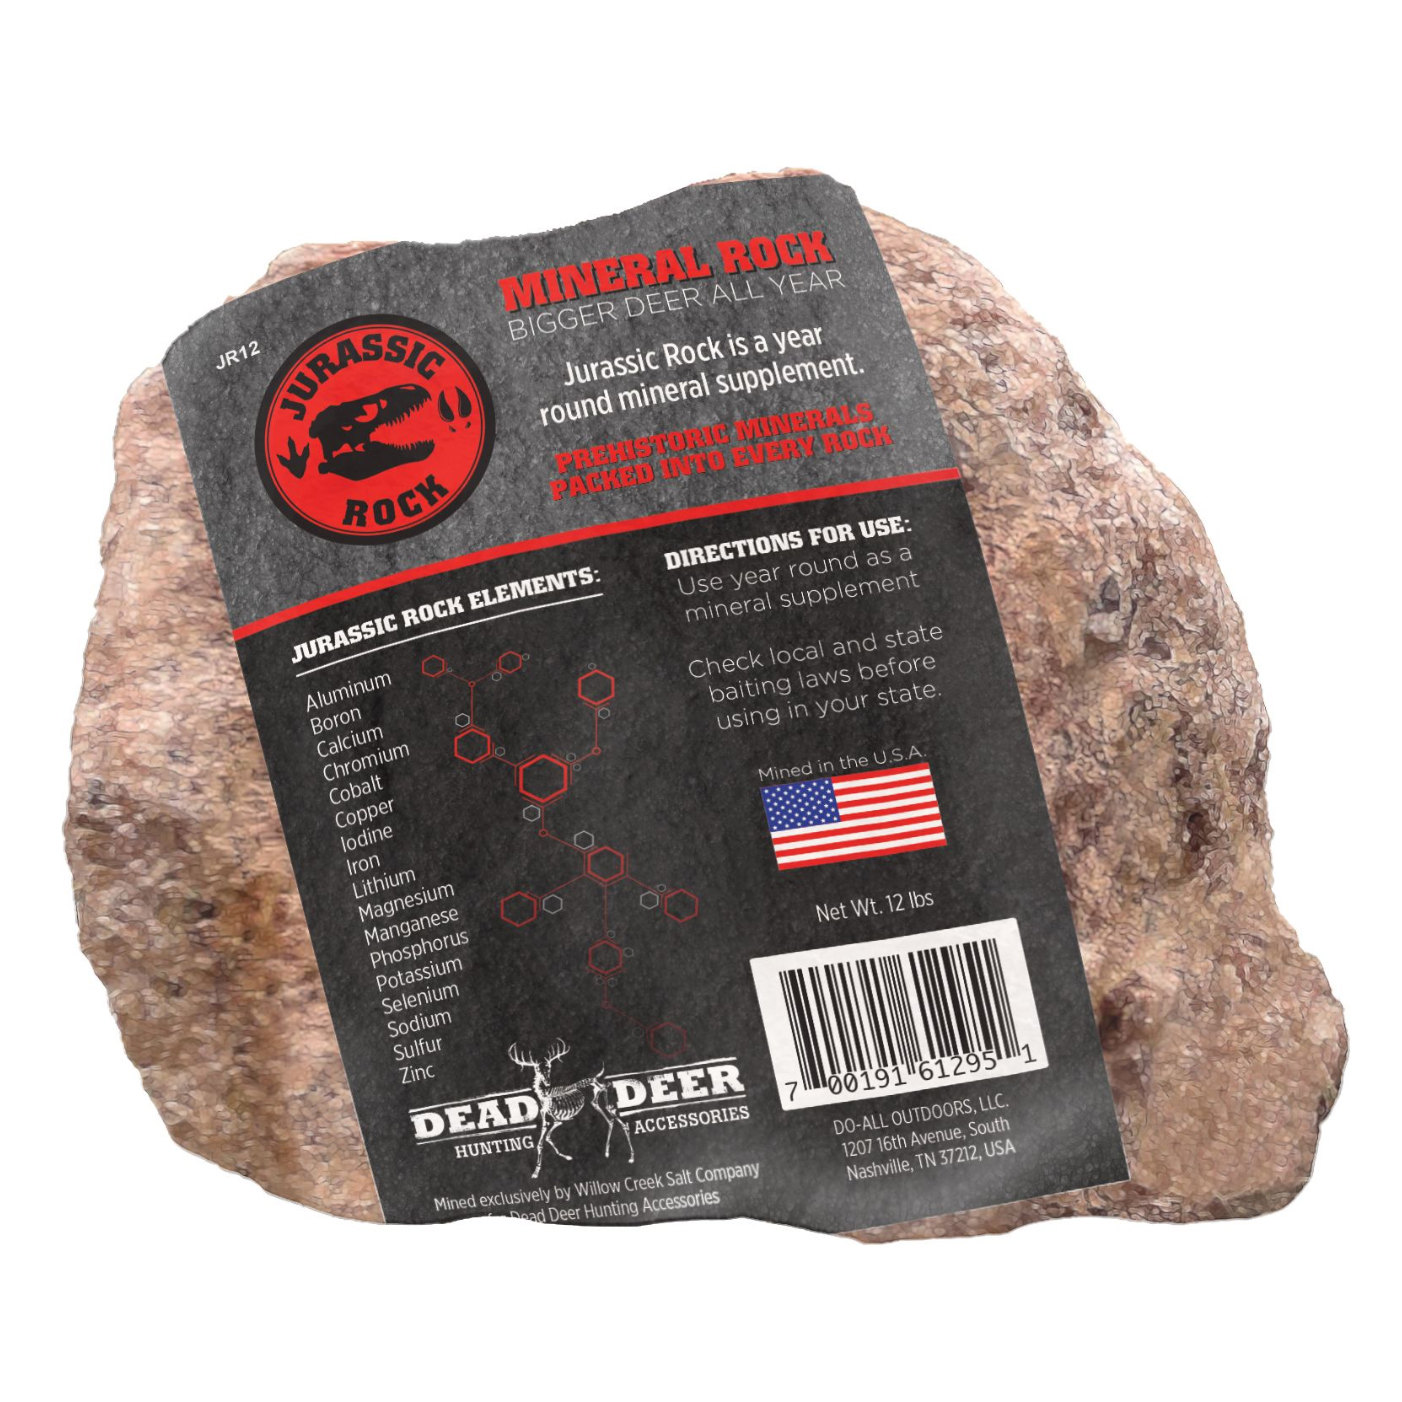 Do-All Outdoors Jurassic Rock Deer Mineral Supplement